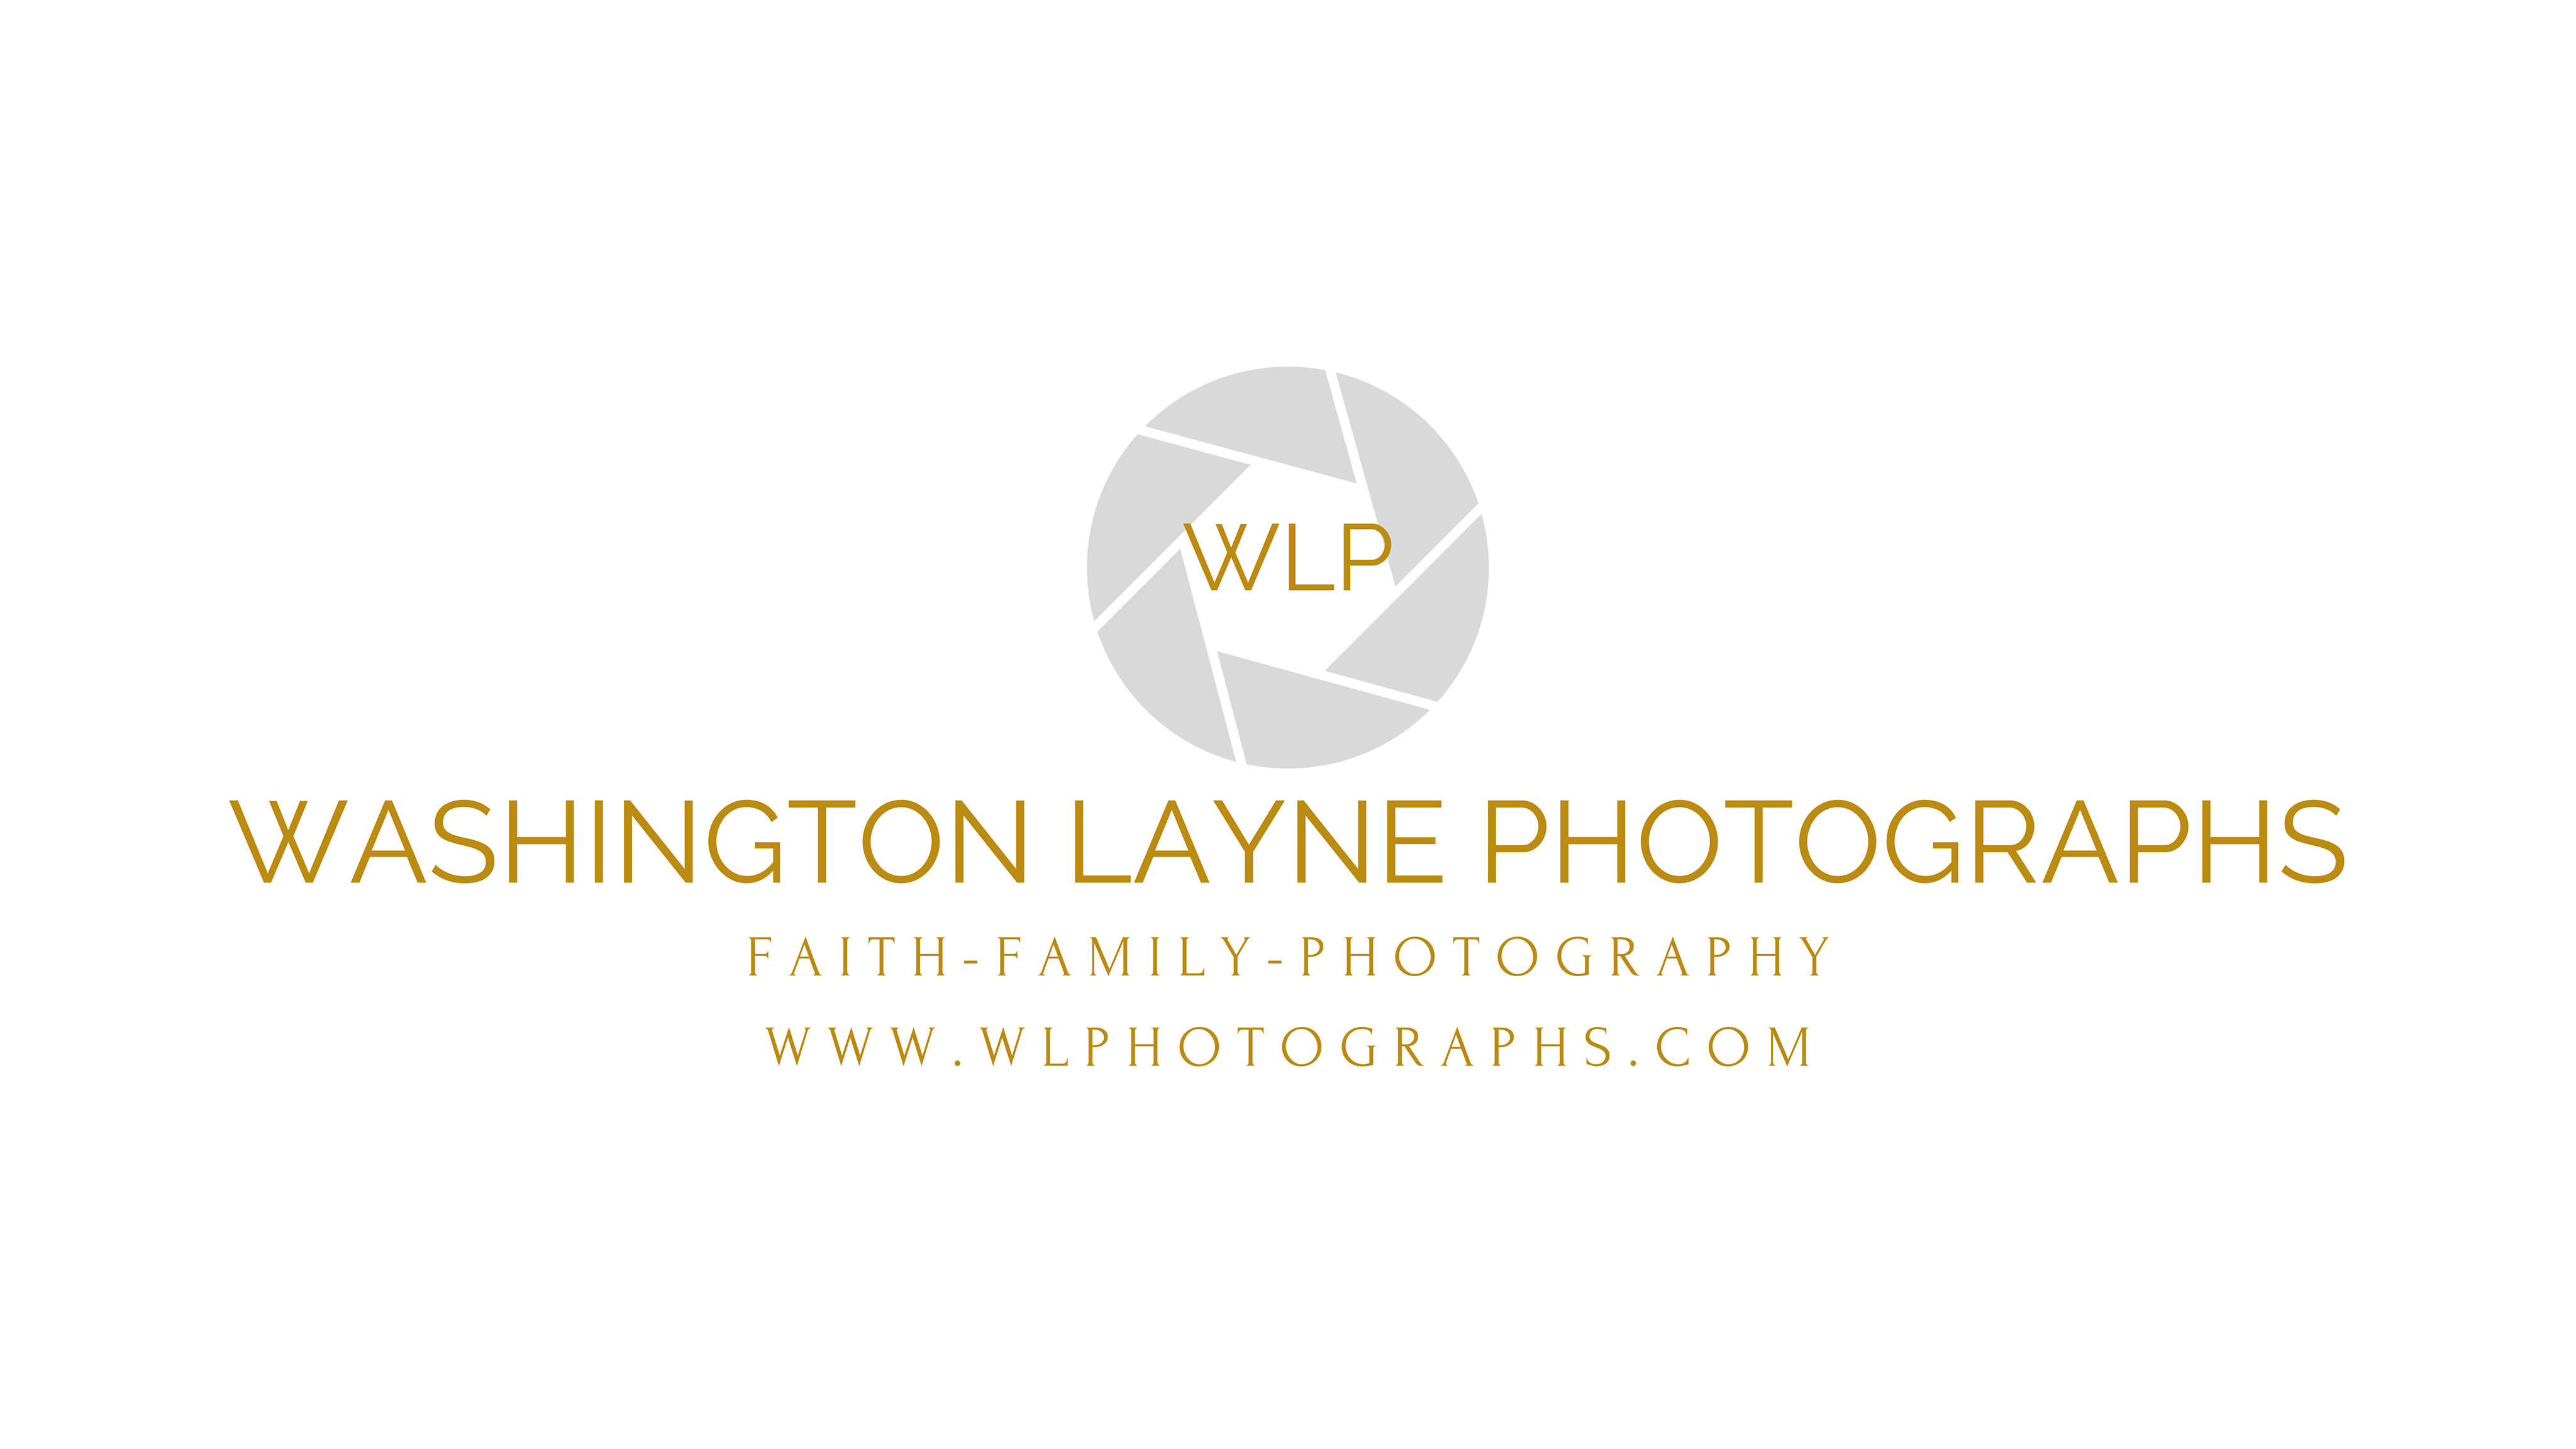 Washington Layne Photographs